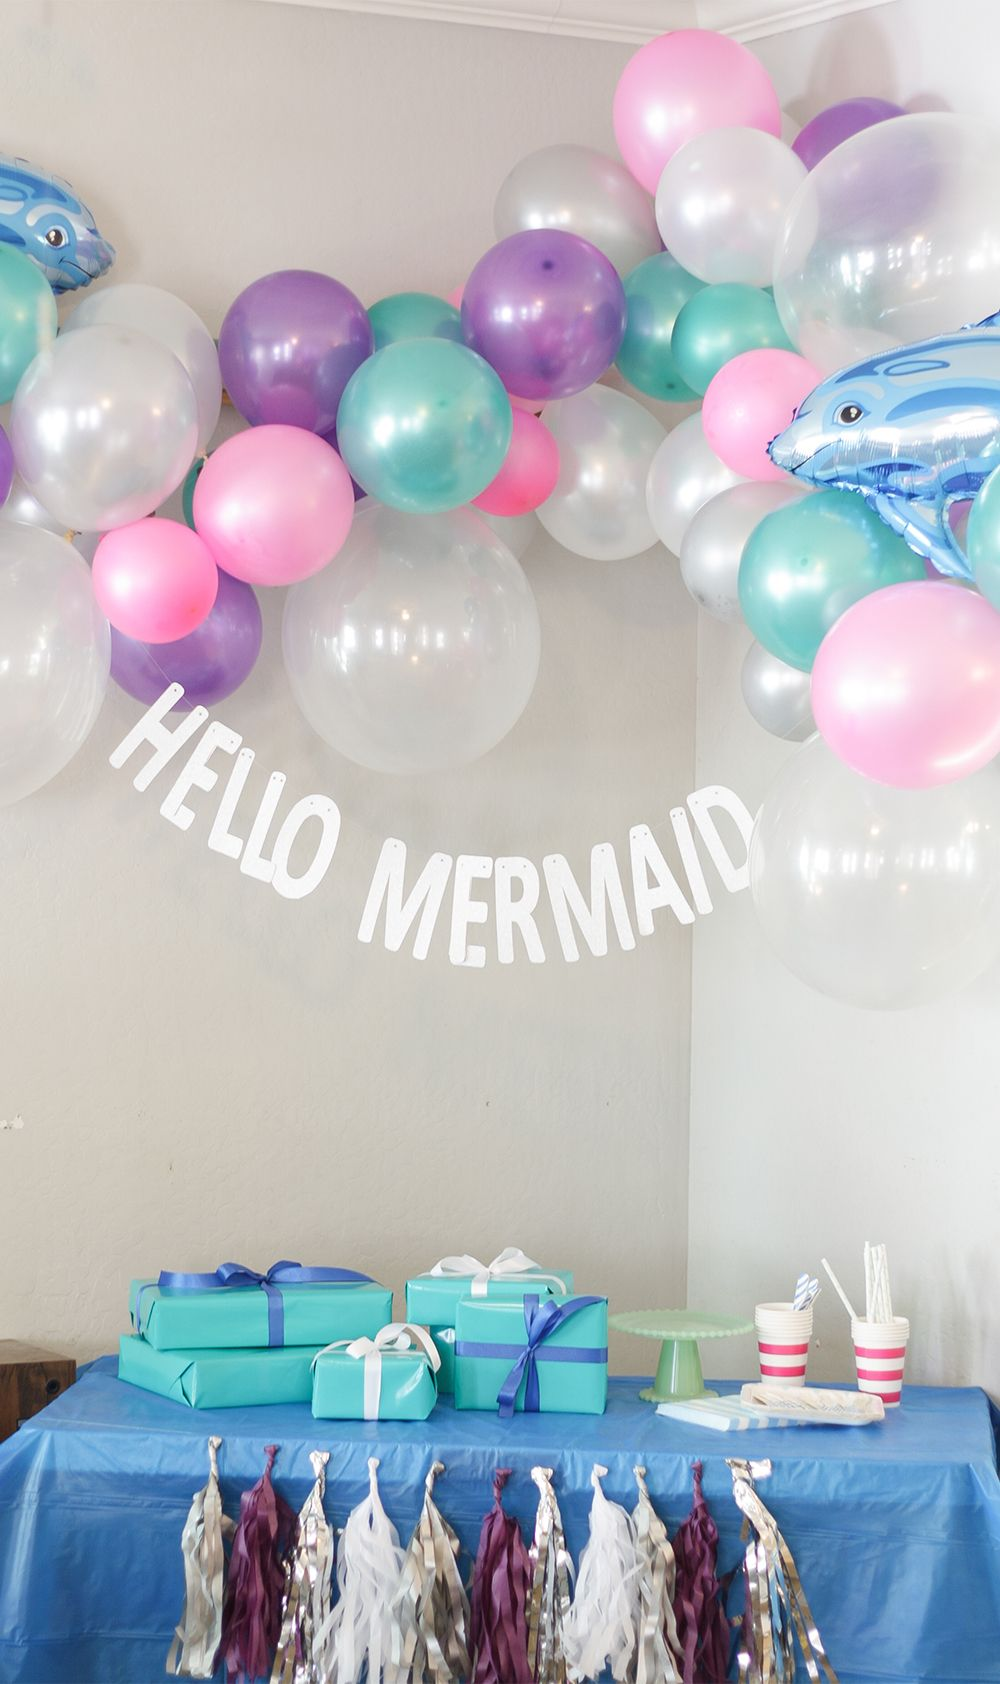 Create A Magical Mermaid Party Backdrop With Balloons And Silver Glitter Letters Just Artifacts Mermaid Balloons Balloon Clusters Balloon Decorations Party